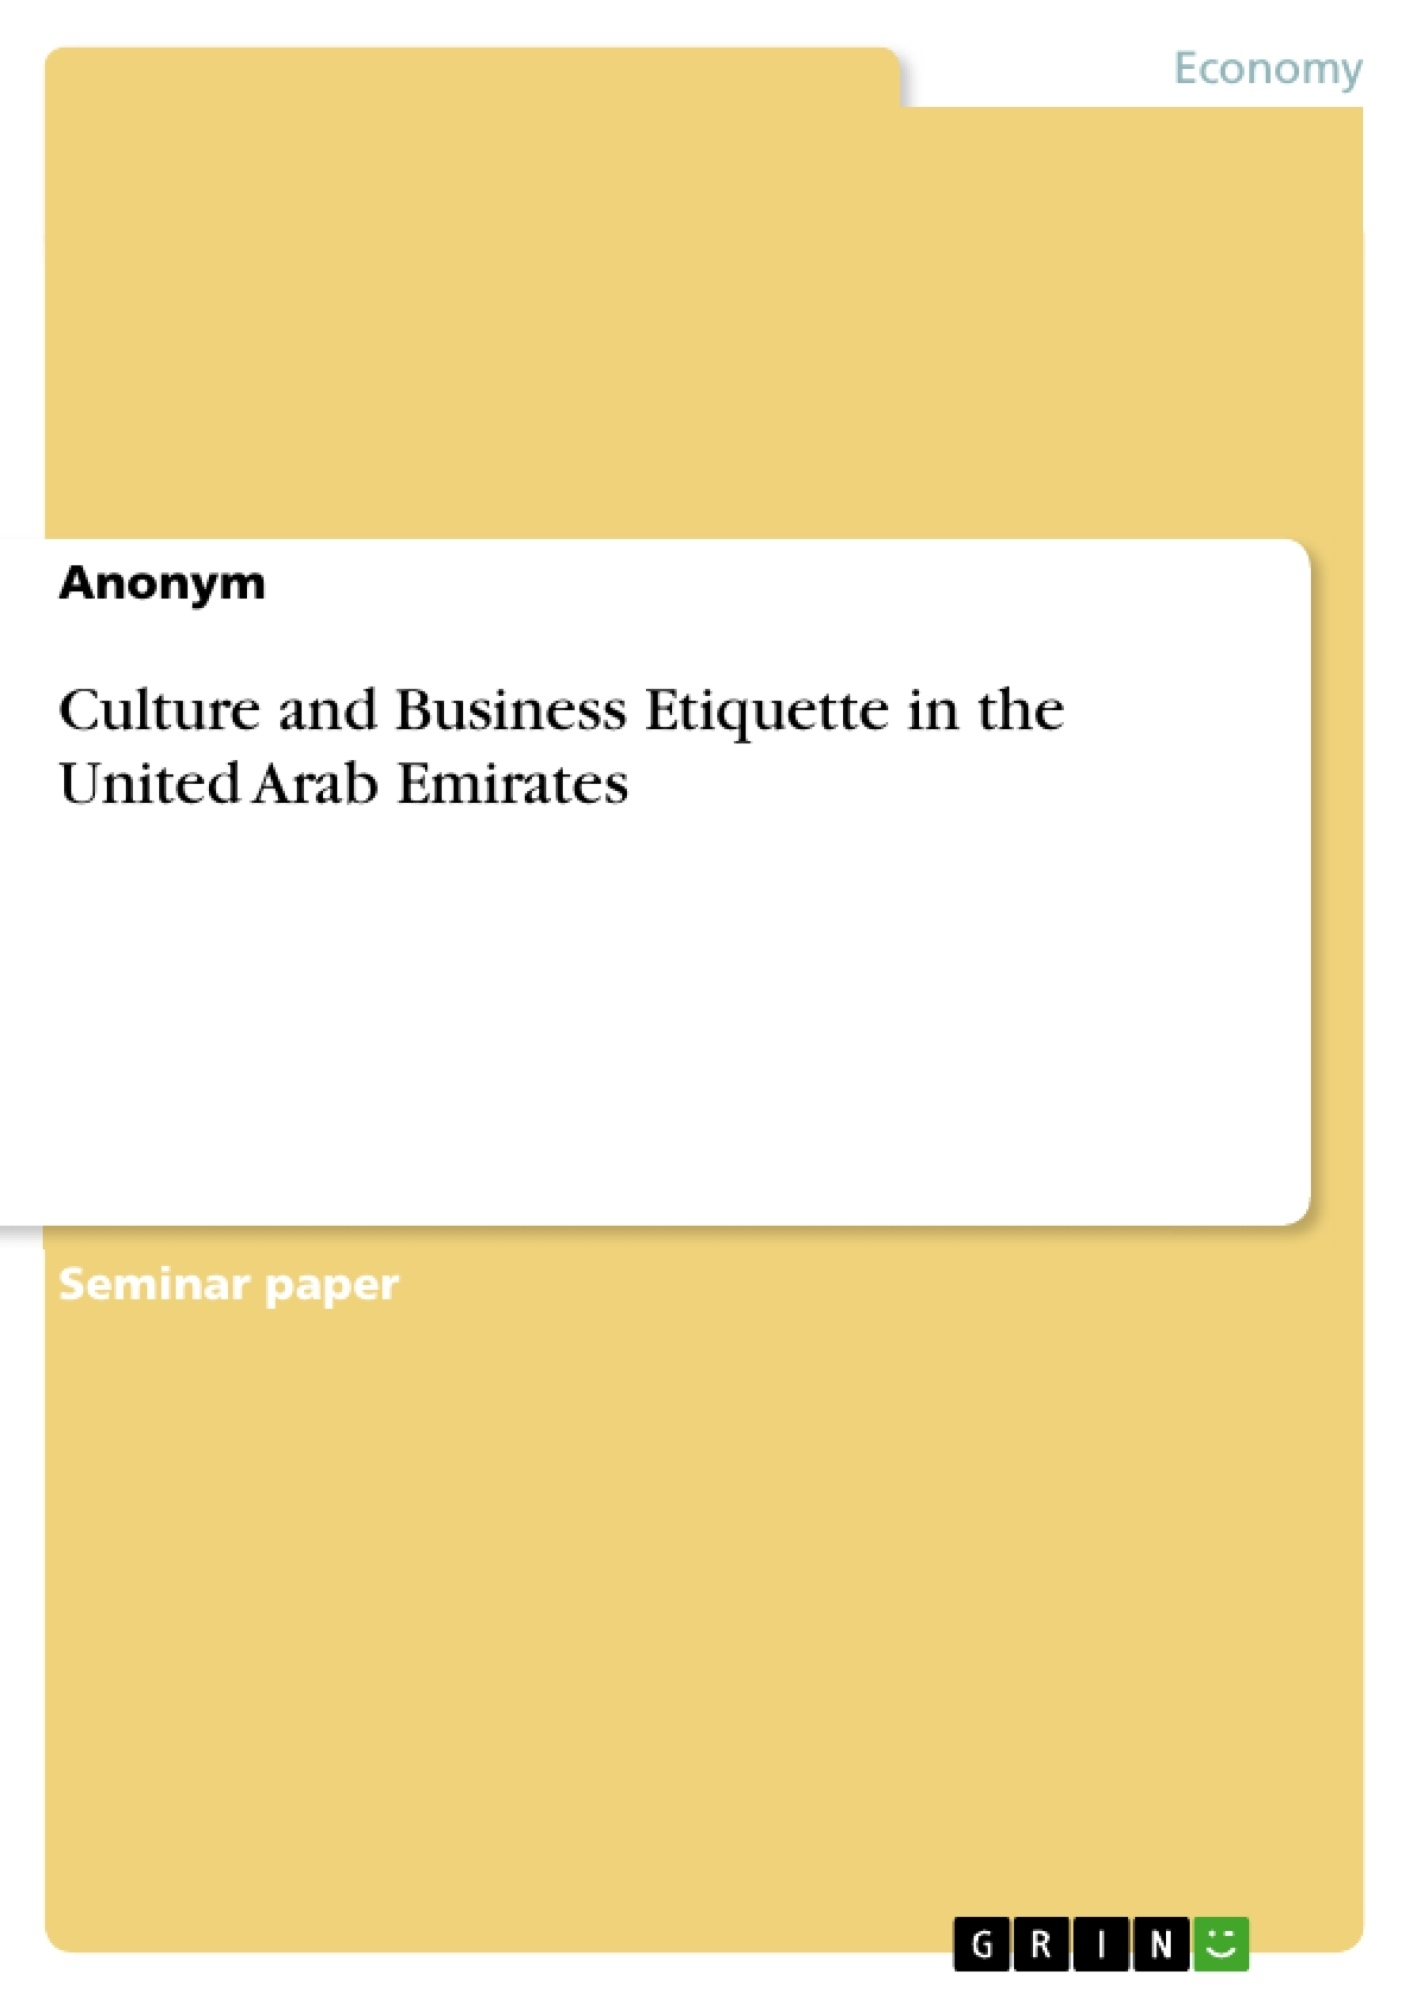 Title: Culture and Business Etiquette in the United Arab Emirates